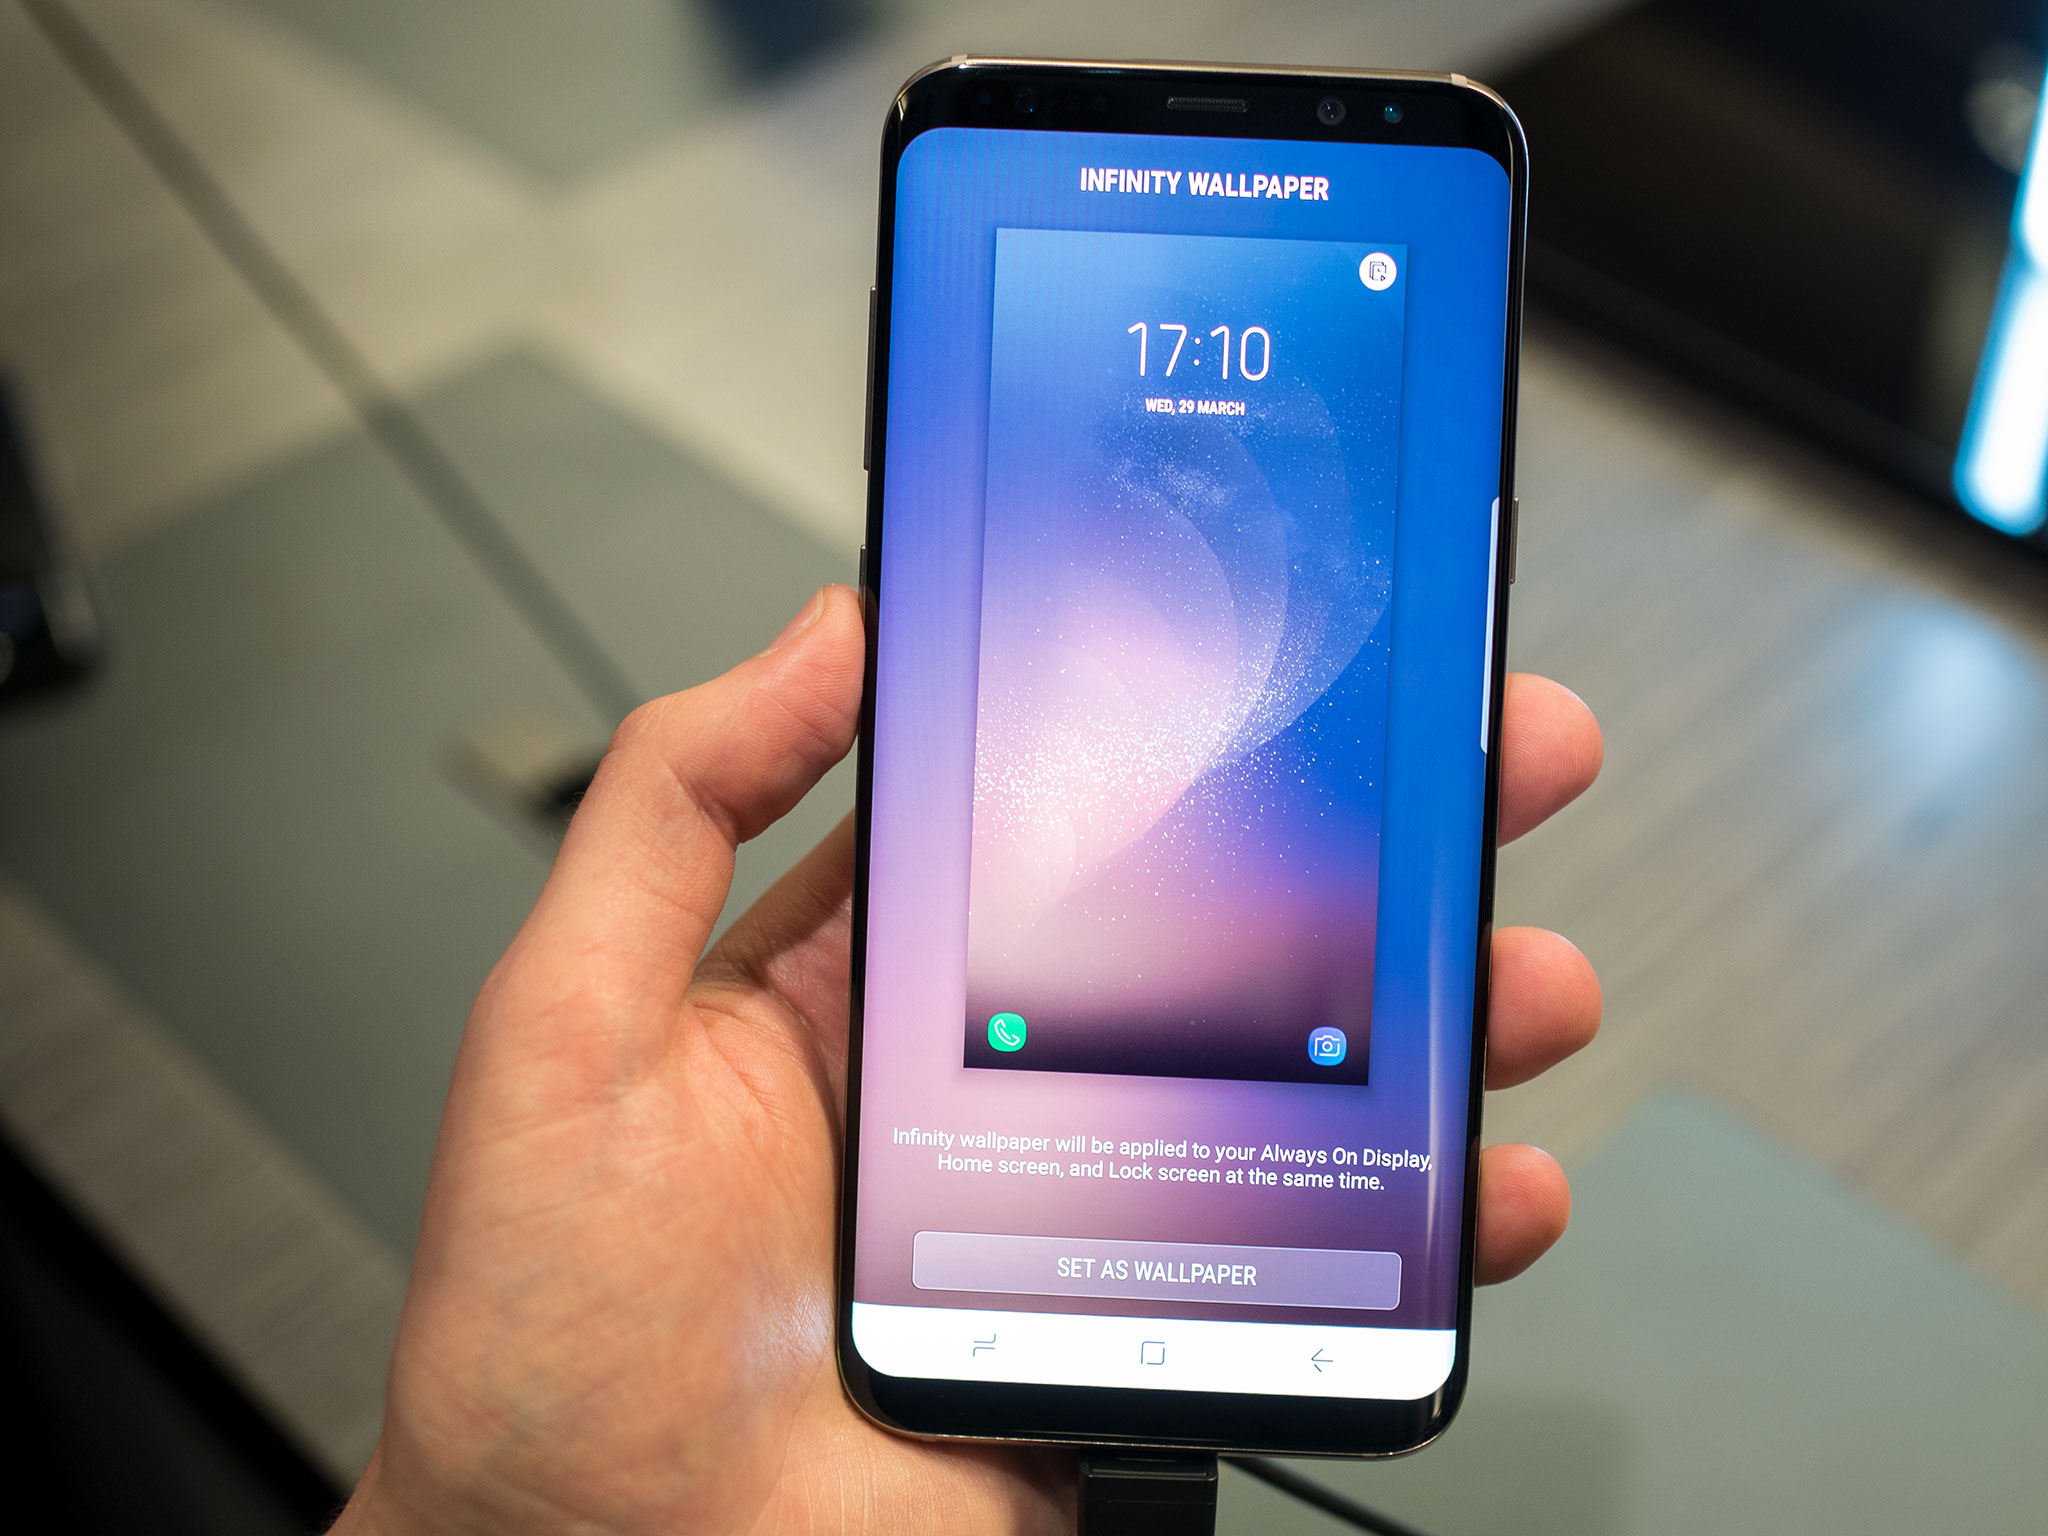 Android Live Wallpaper 3d Effect The Galaxy S8 S New Infinity Wallpapers Are Awesome